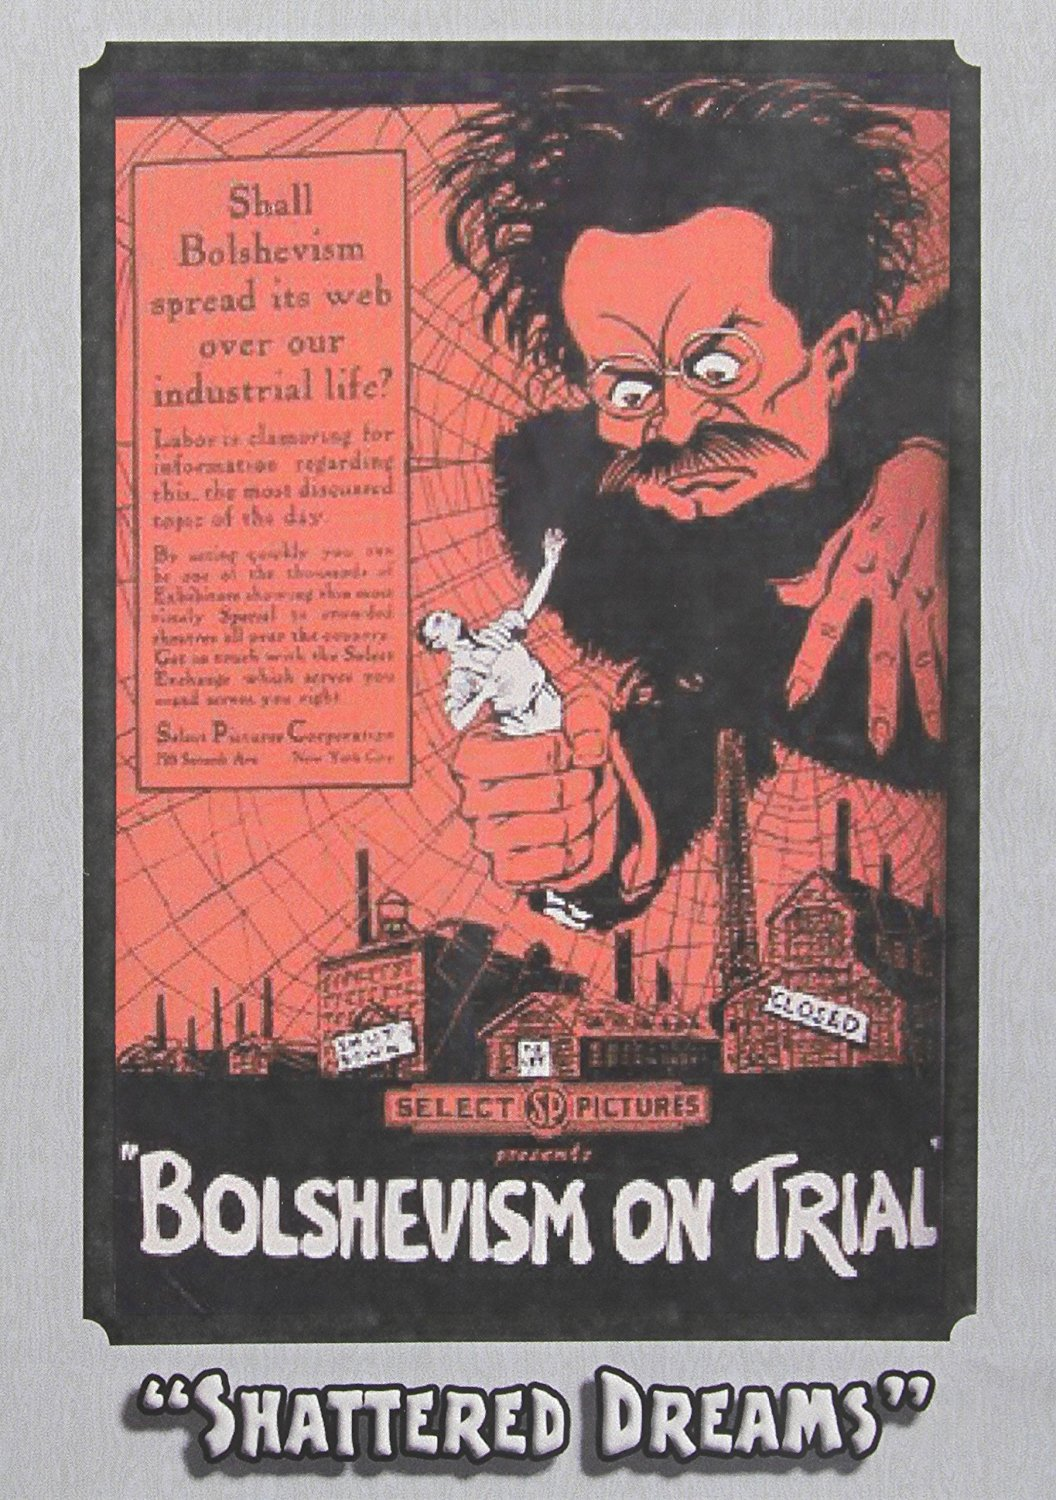 Bolshevism on Trial